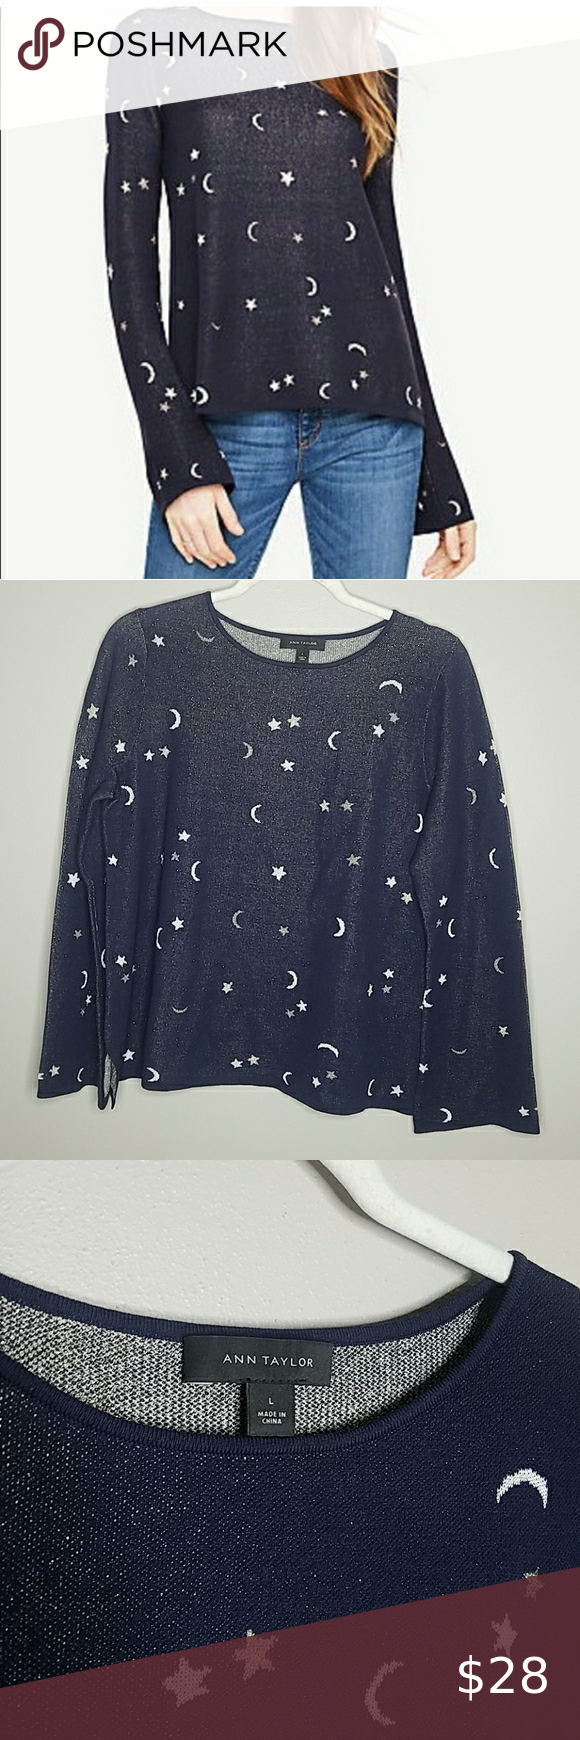 Ann Taylor Moon and Stars Sweater, Large Ann Taylor Moon and Stars Sweater in Navy, Gold and White, Size Large.  69% Viscose, 21% Nylon, 5% Polyester, 5% Metallic.  Measures approximately 24